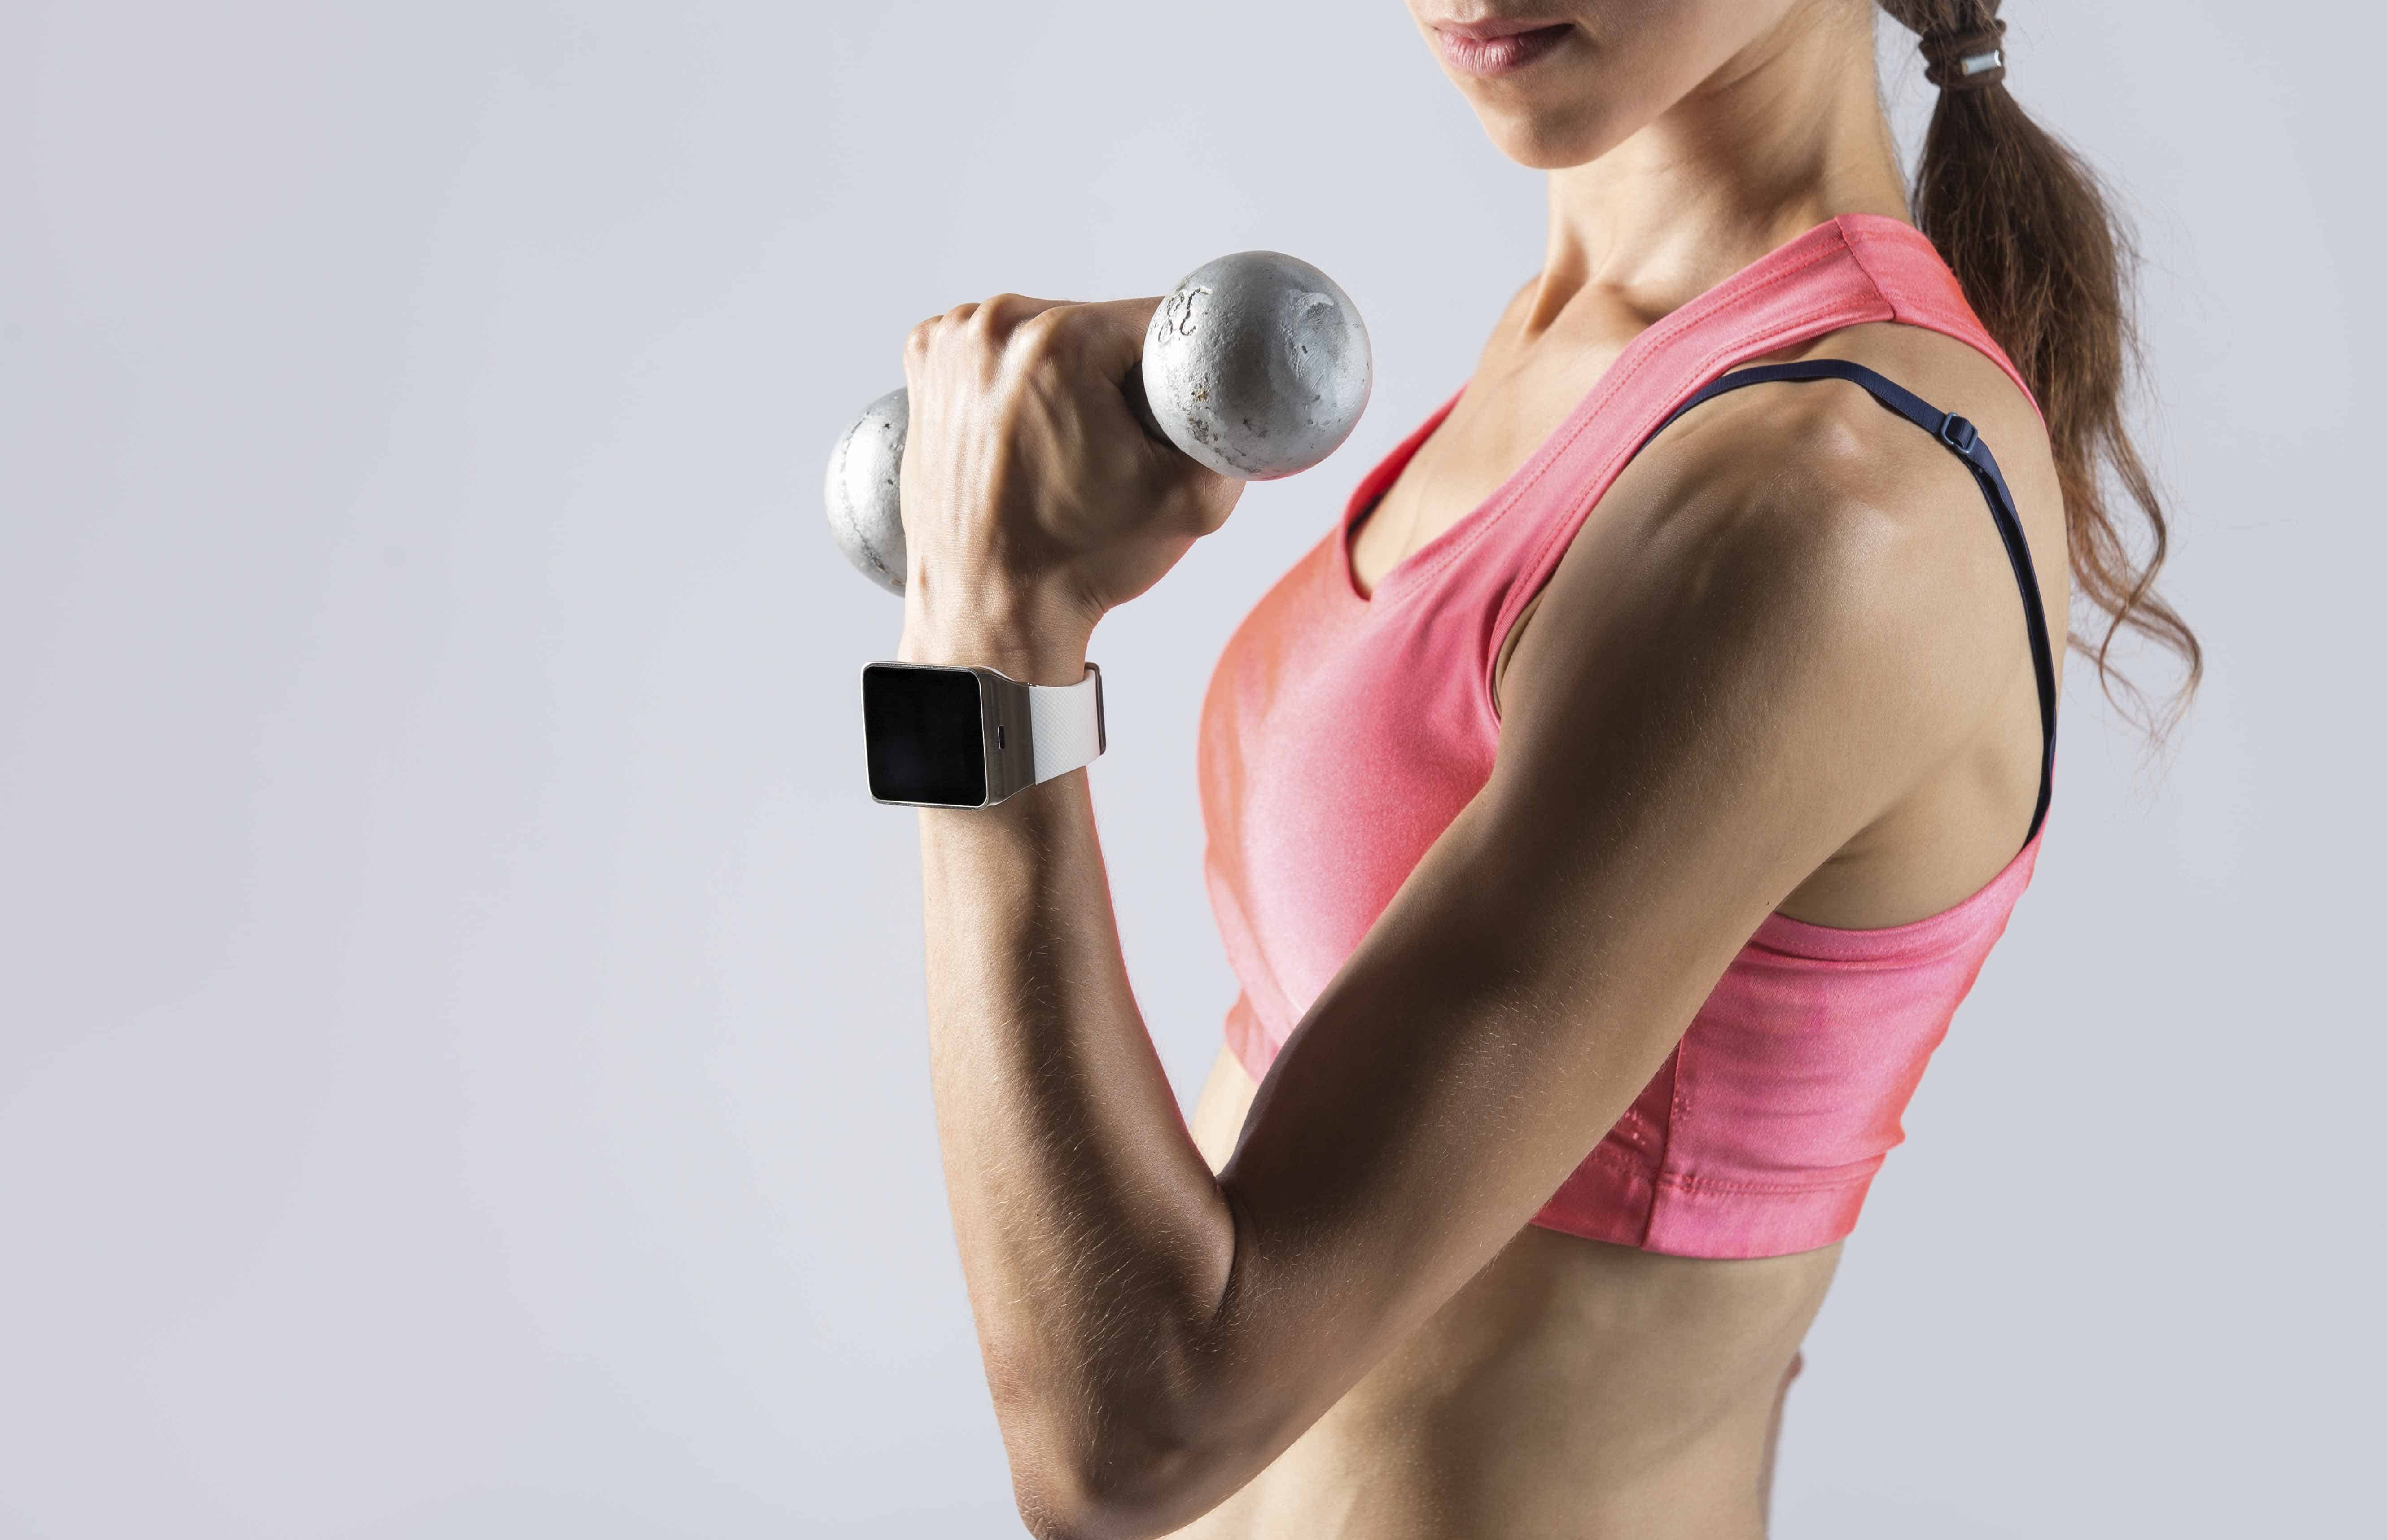 8 Essential Weights Moves For Beginners, According To A